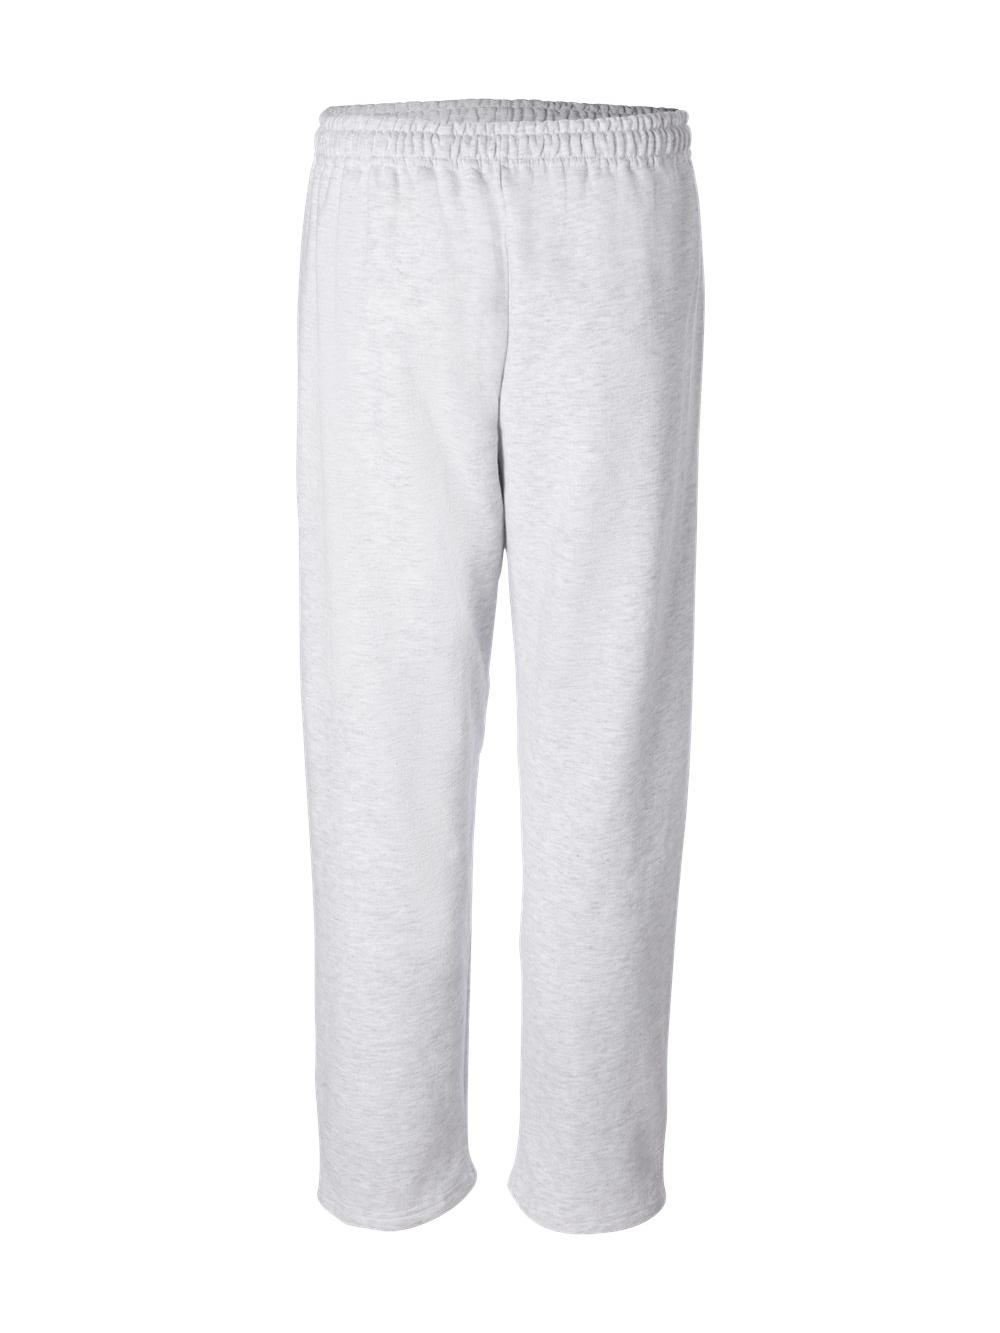 Gildan-Heavy-Blend-Open-Bottom-Sweatpants-18400 thumbnail 4